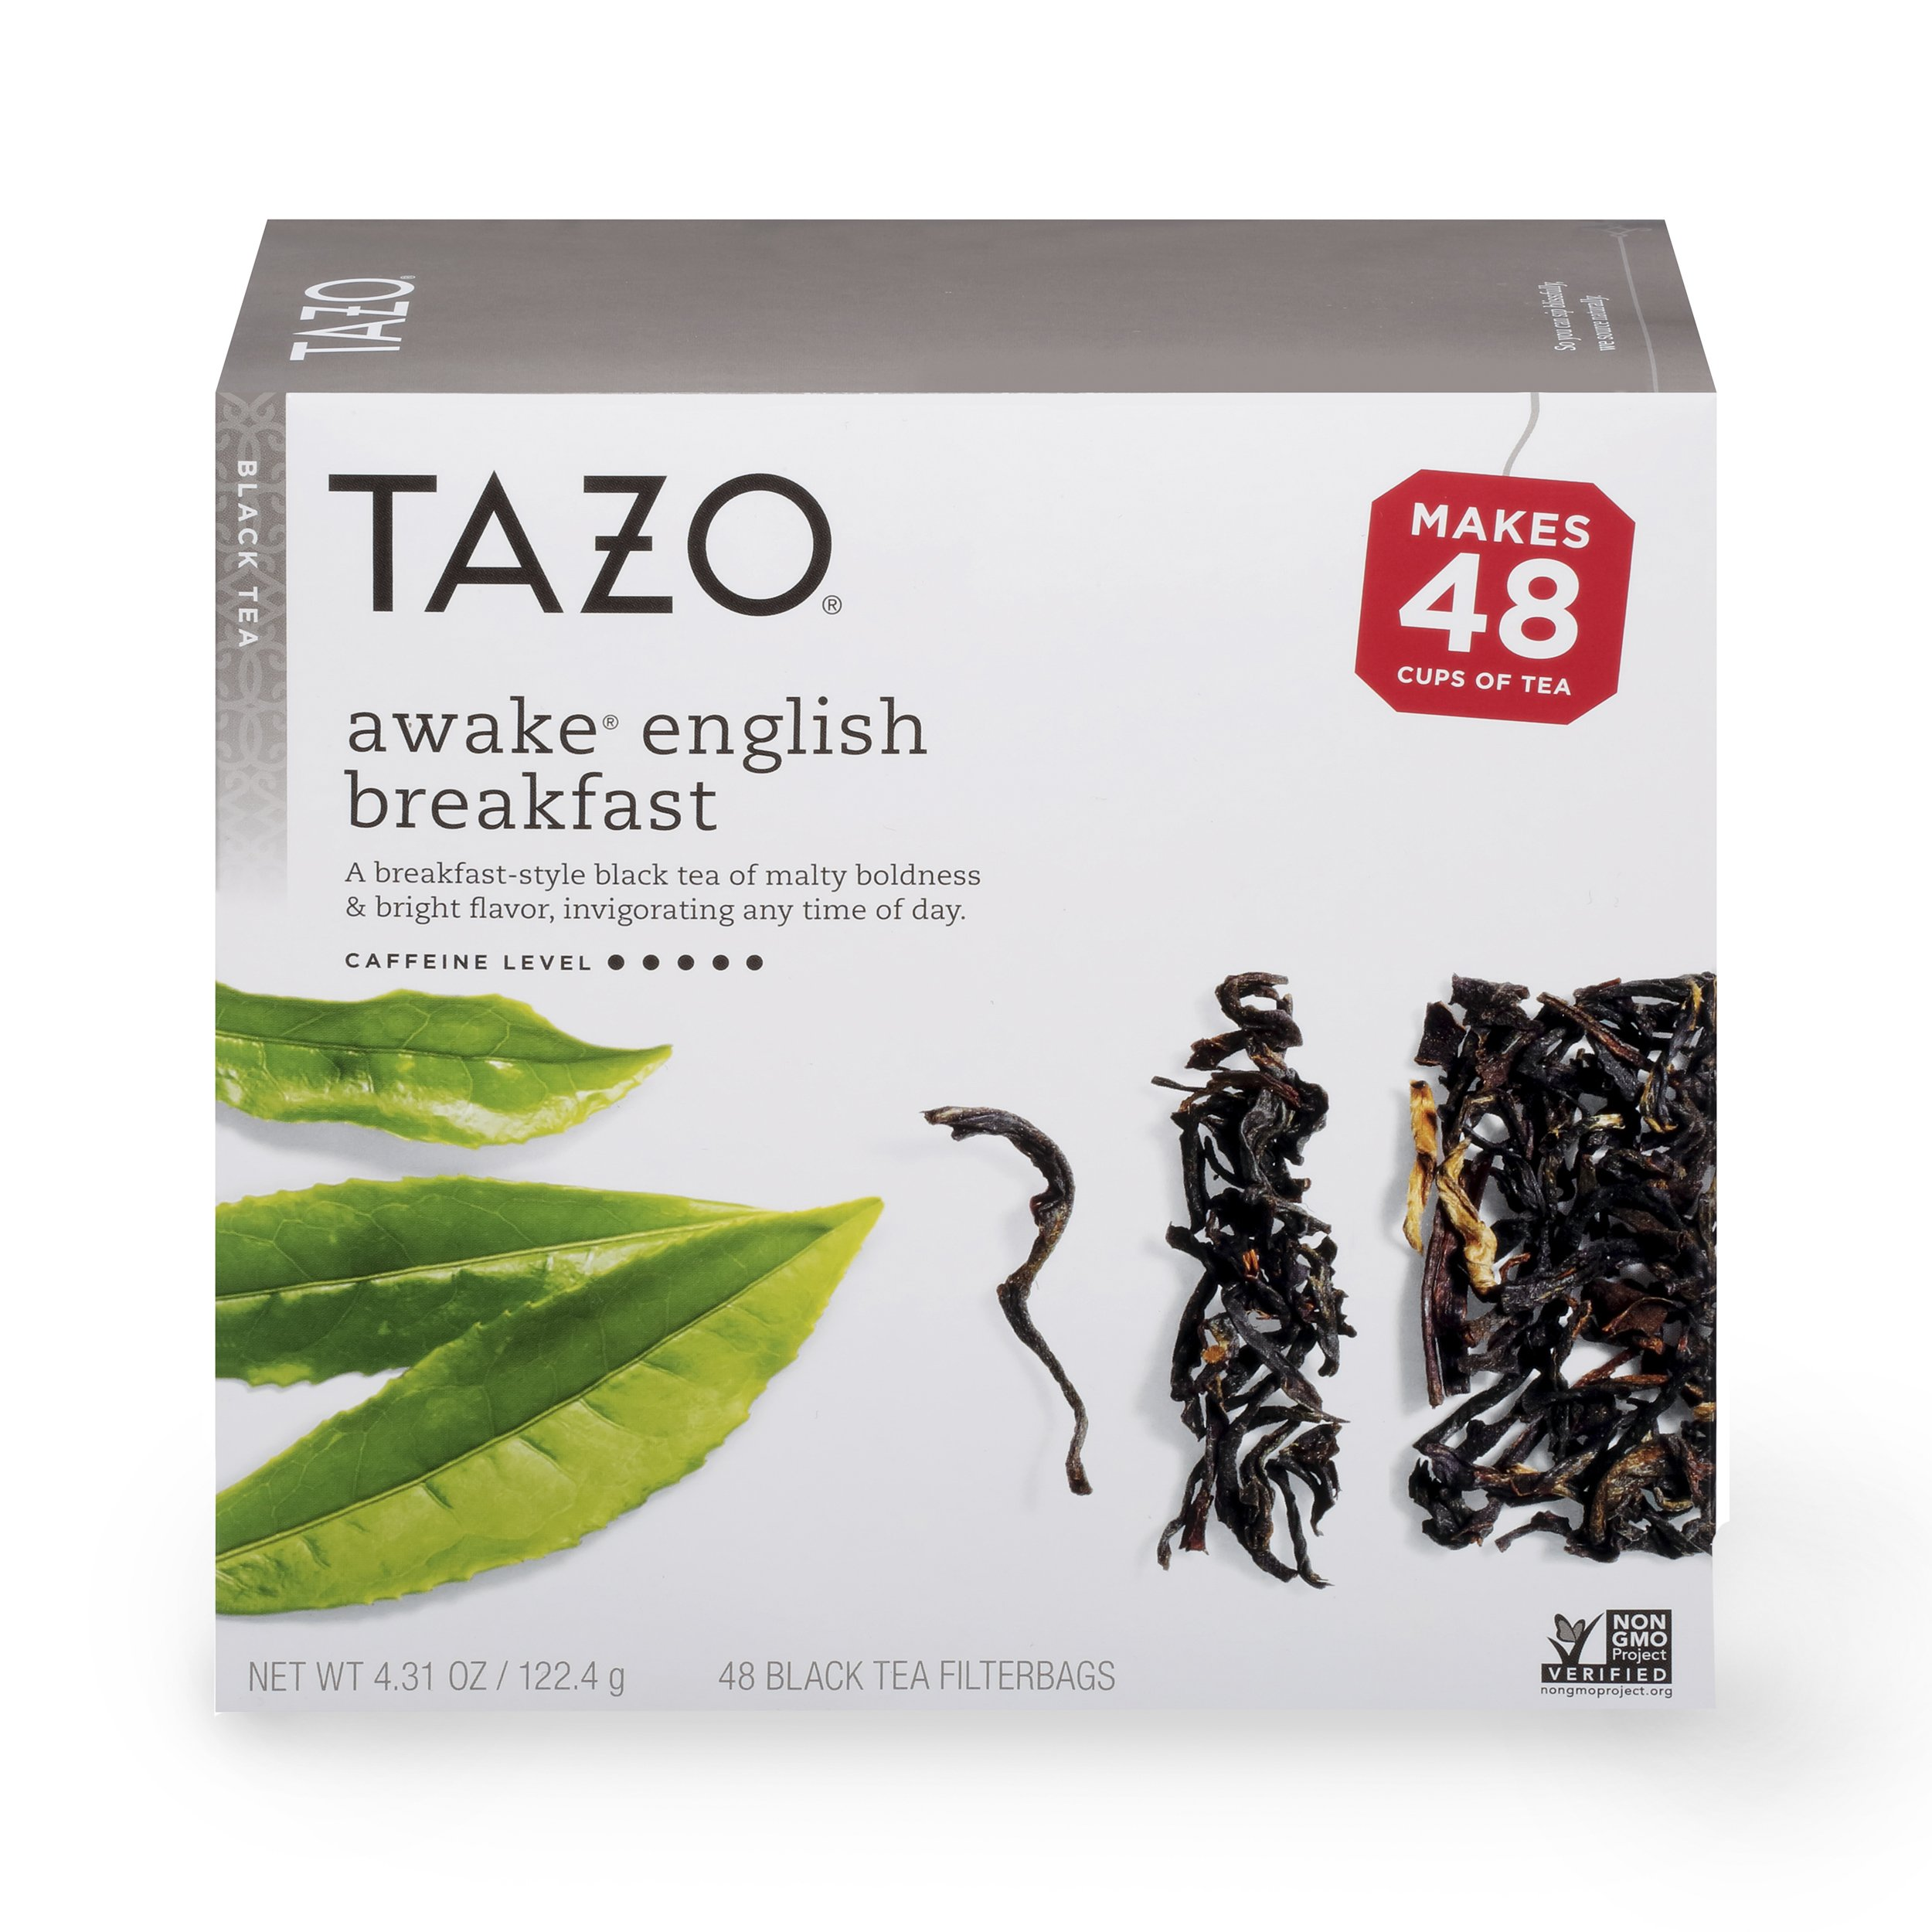 Tazo Awake English Breakfast Black Tea Filterbags 48 ct, Pack of 4